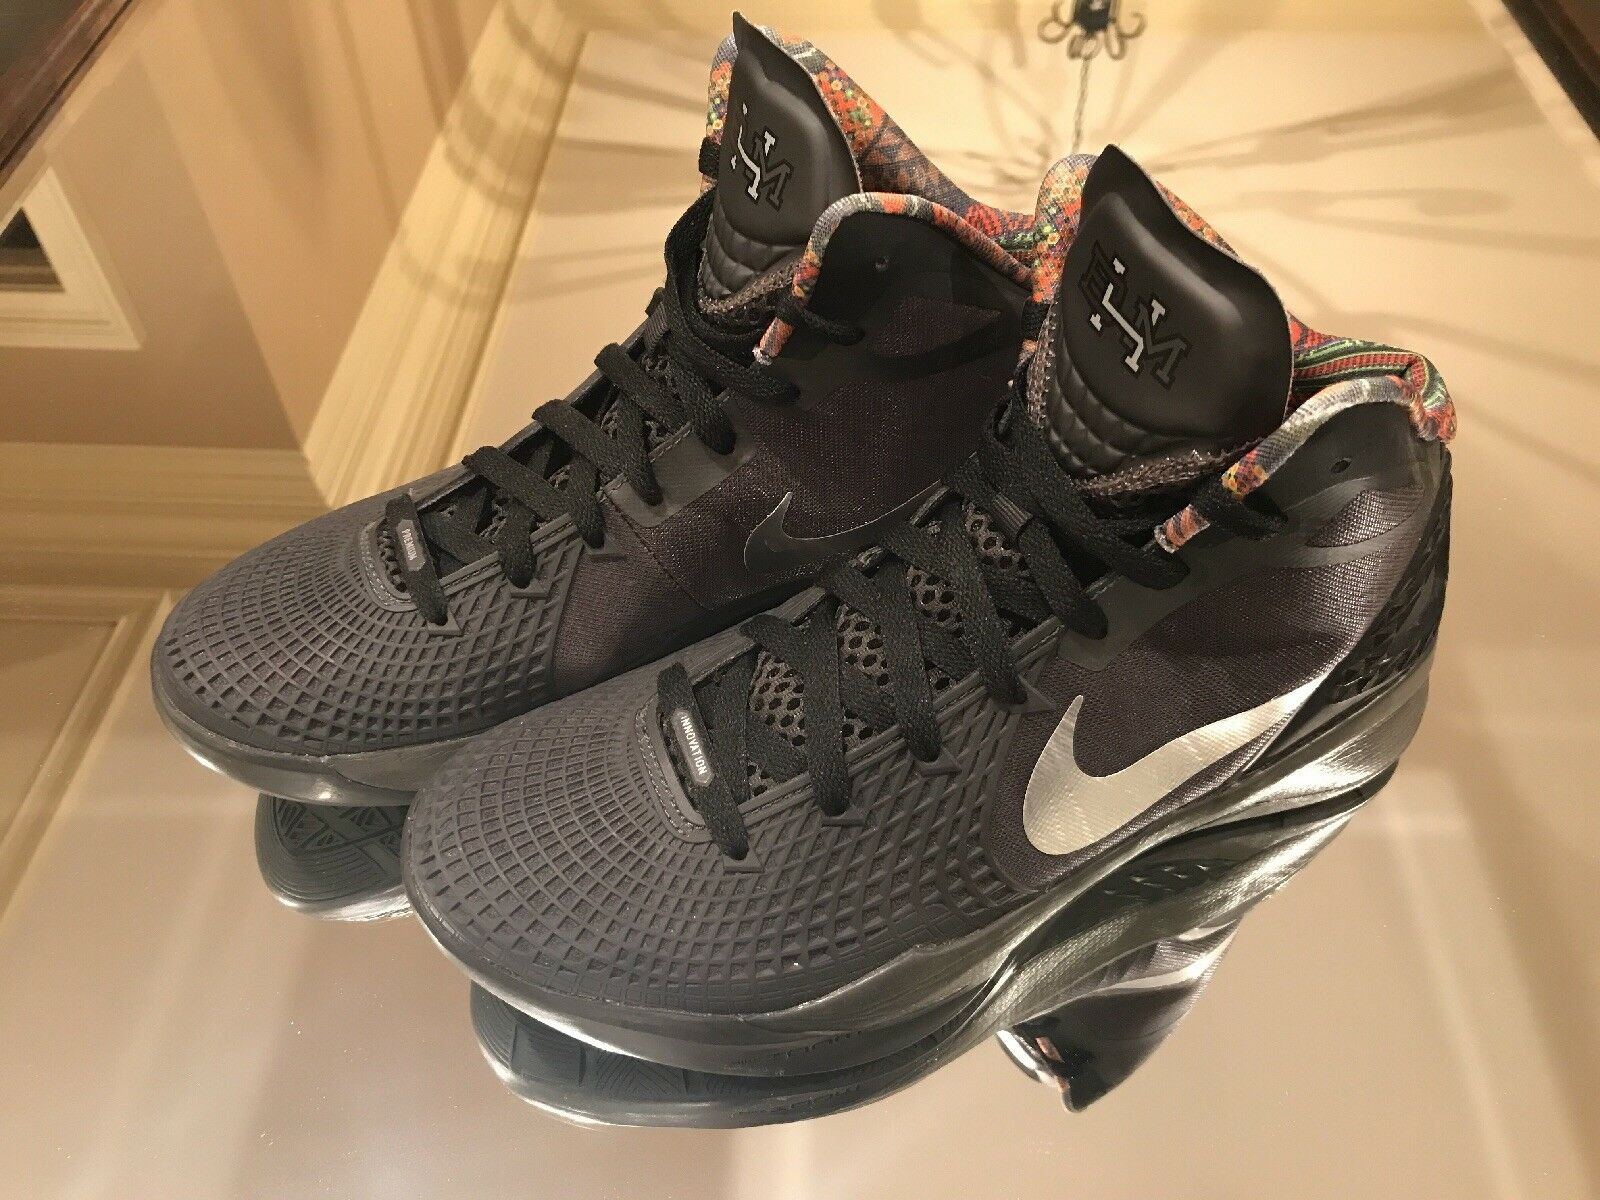 Nike BHM Hyperdunk Supreme 2011 Black History Month Look See Sample Rare PE